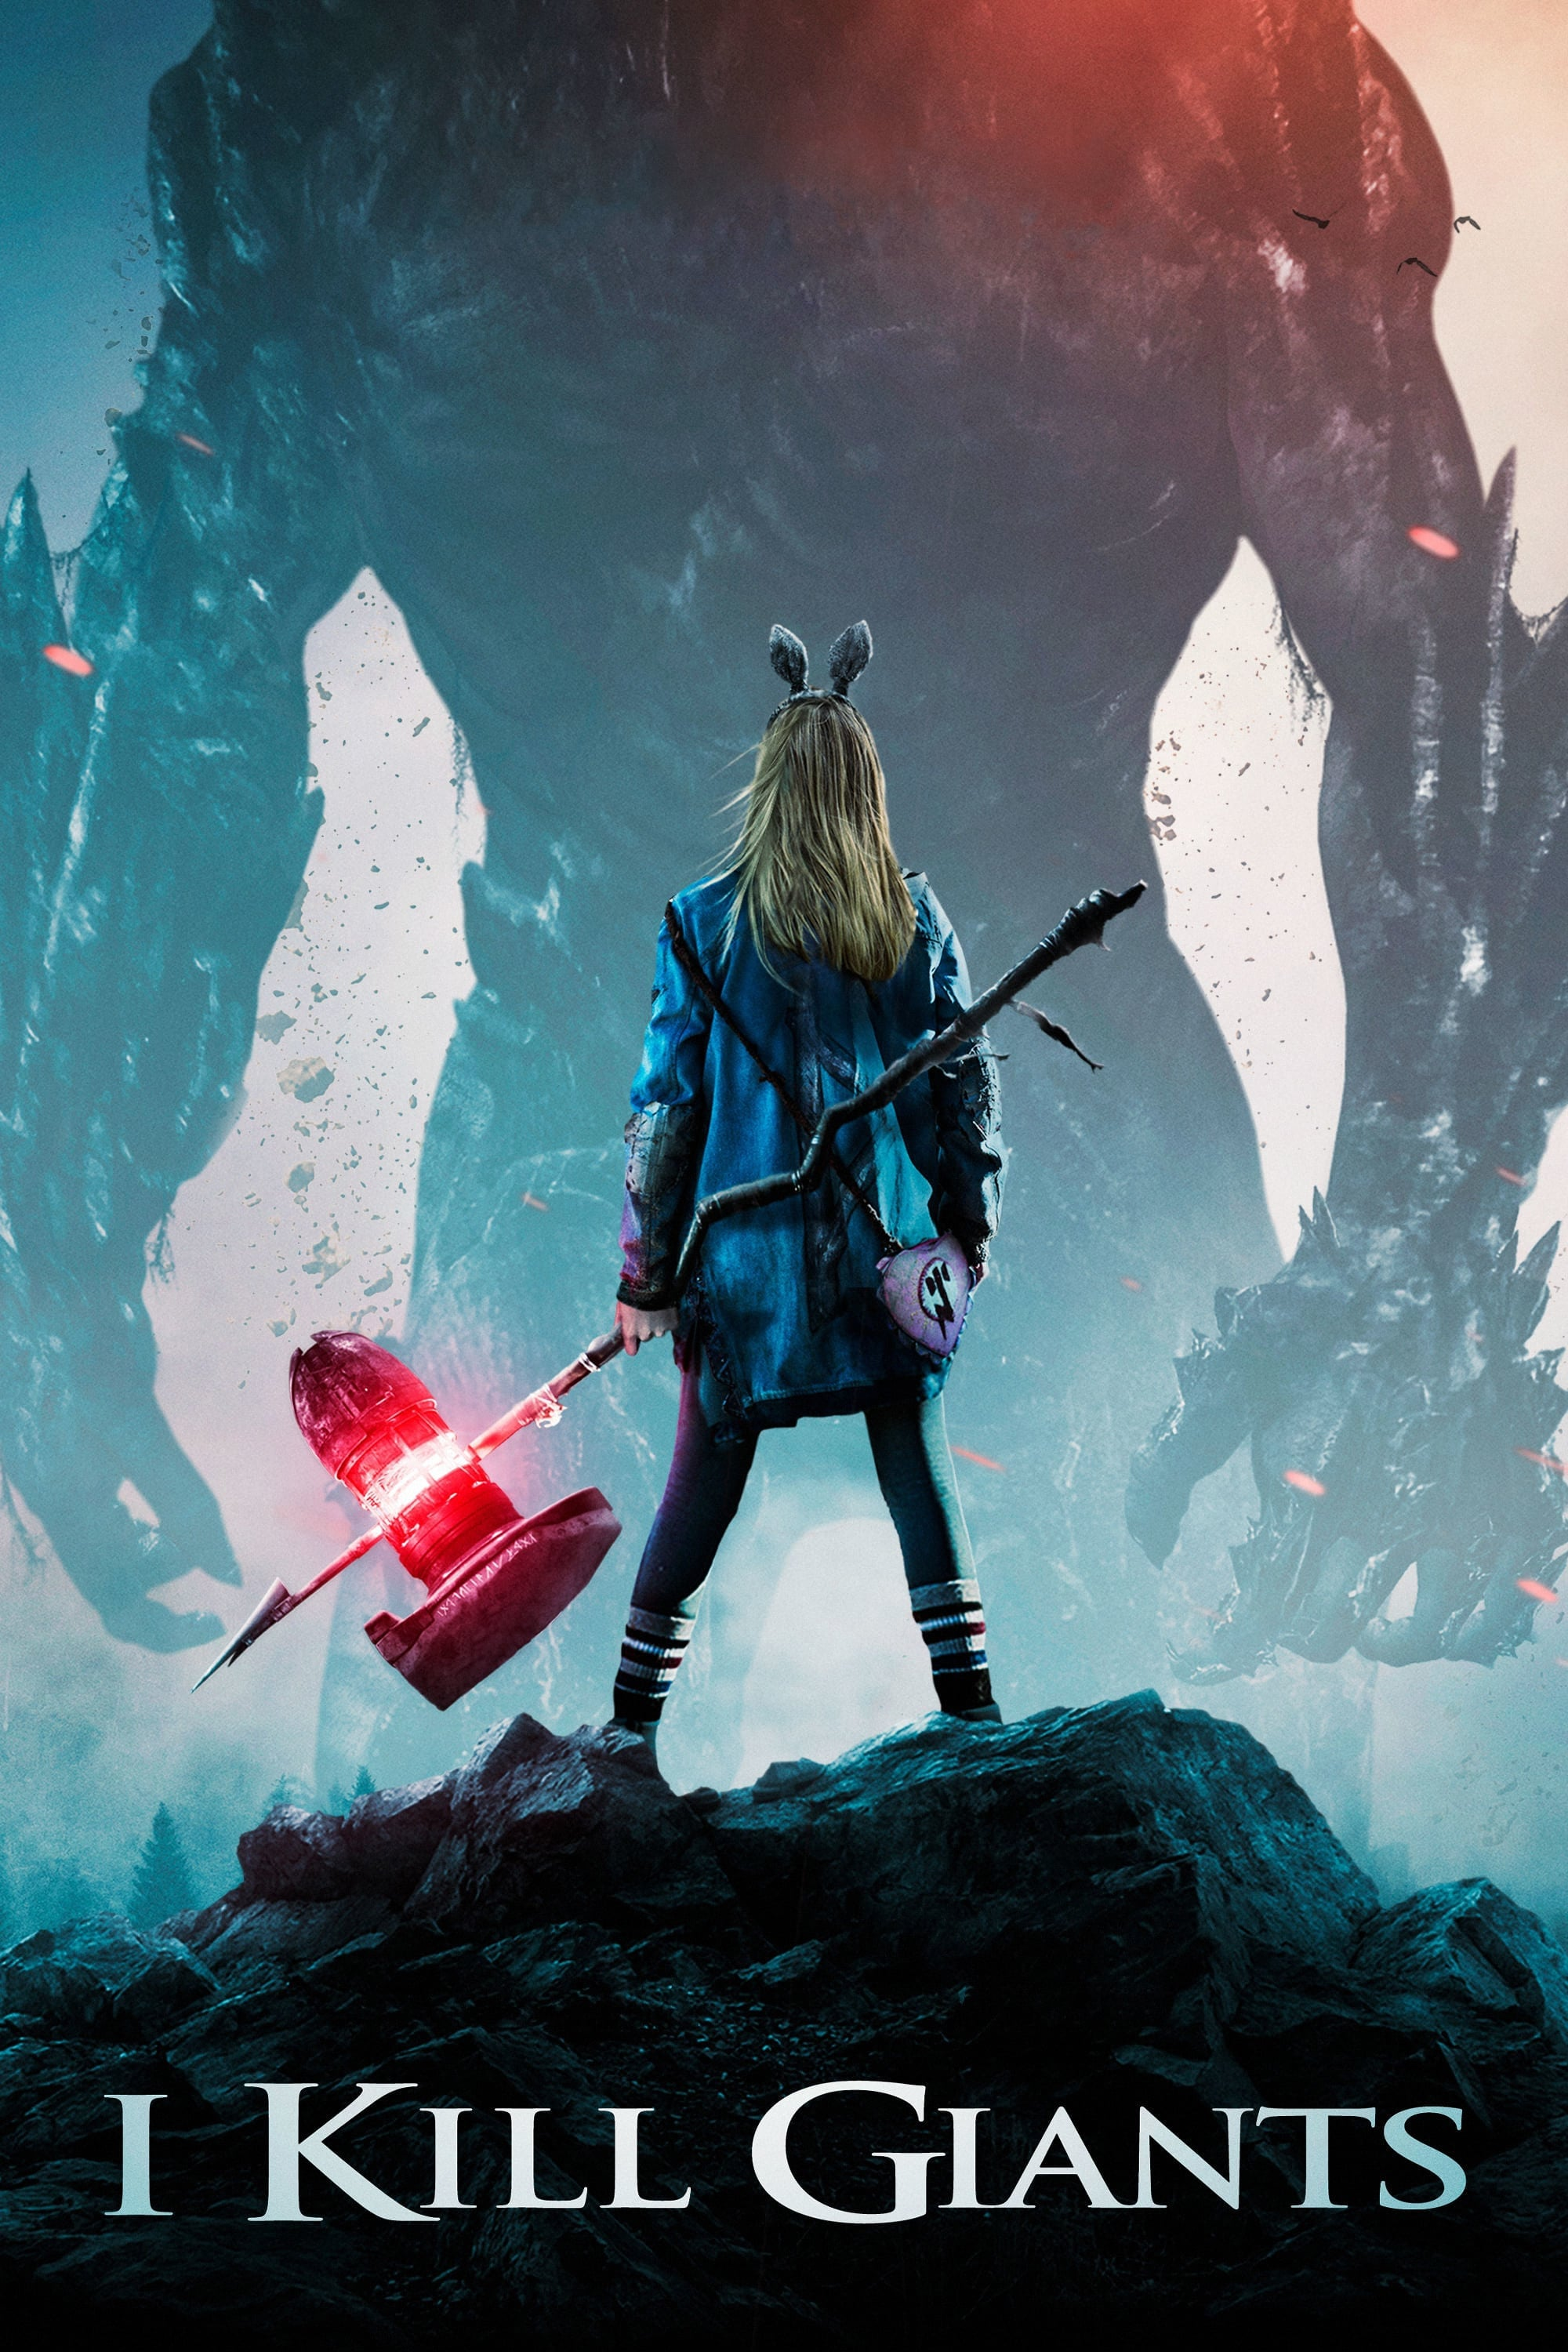 image for I Kill Giants